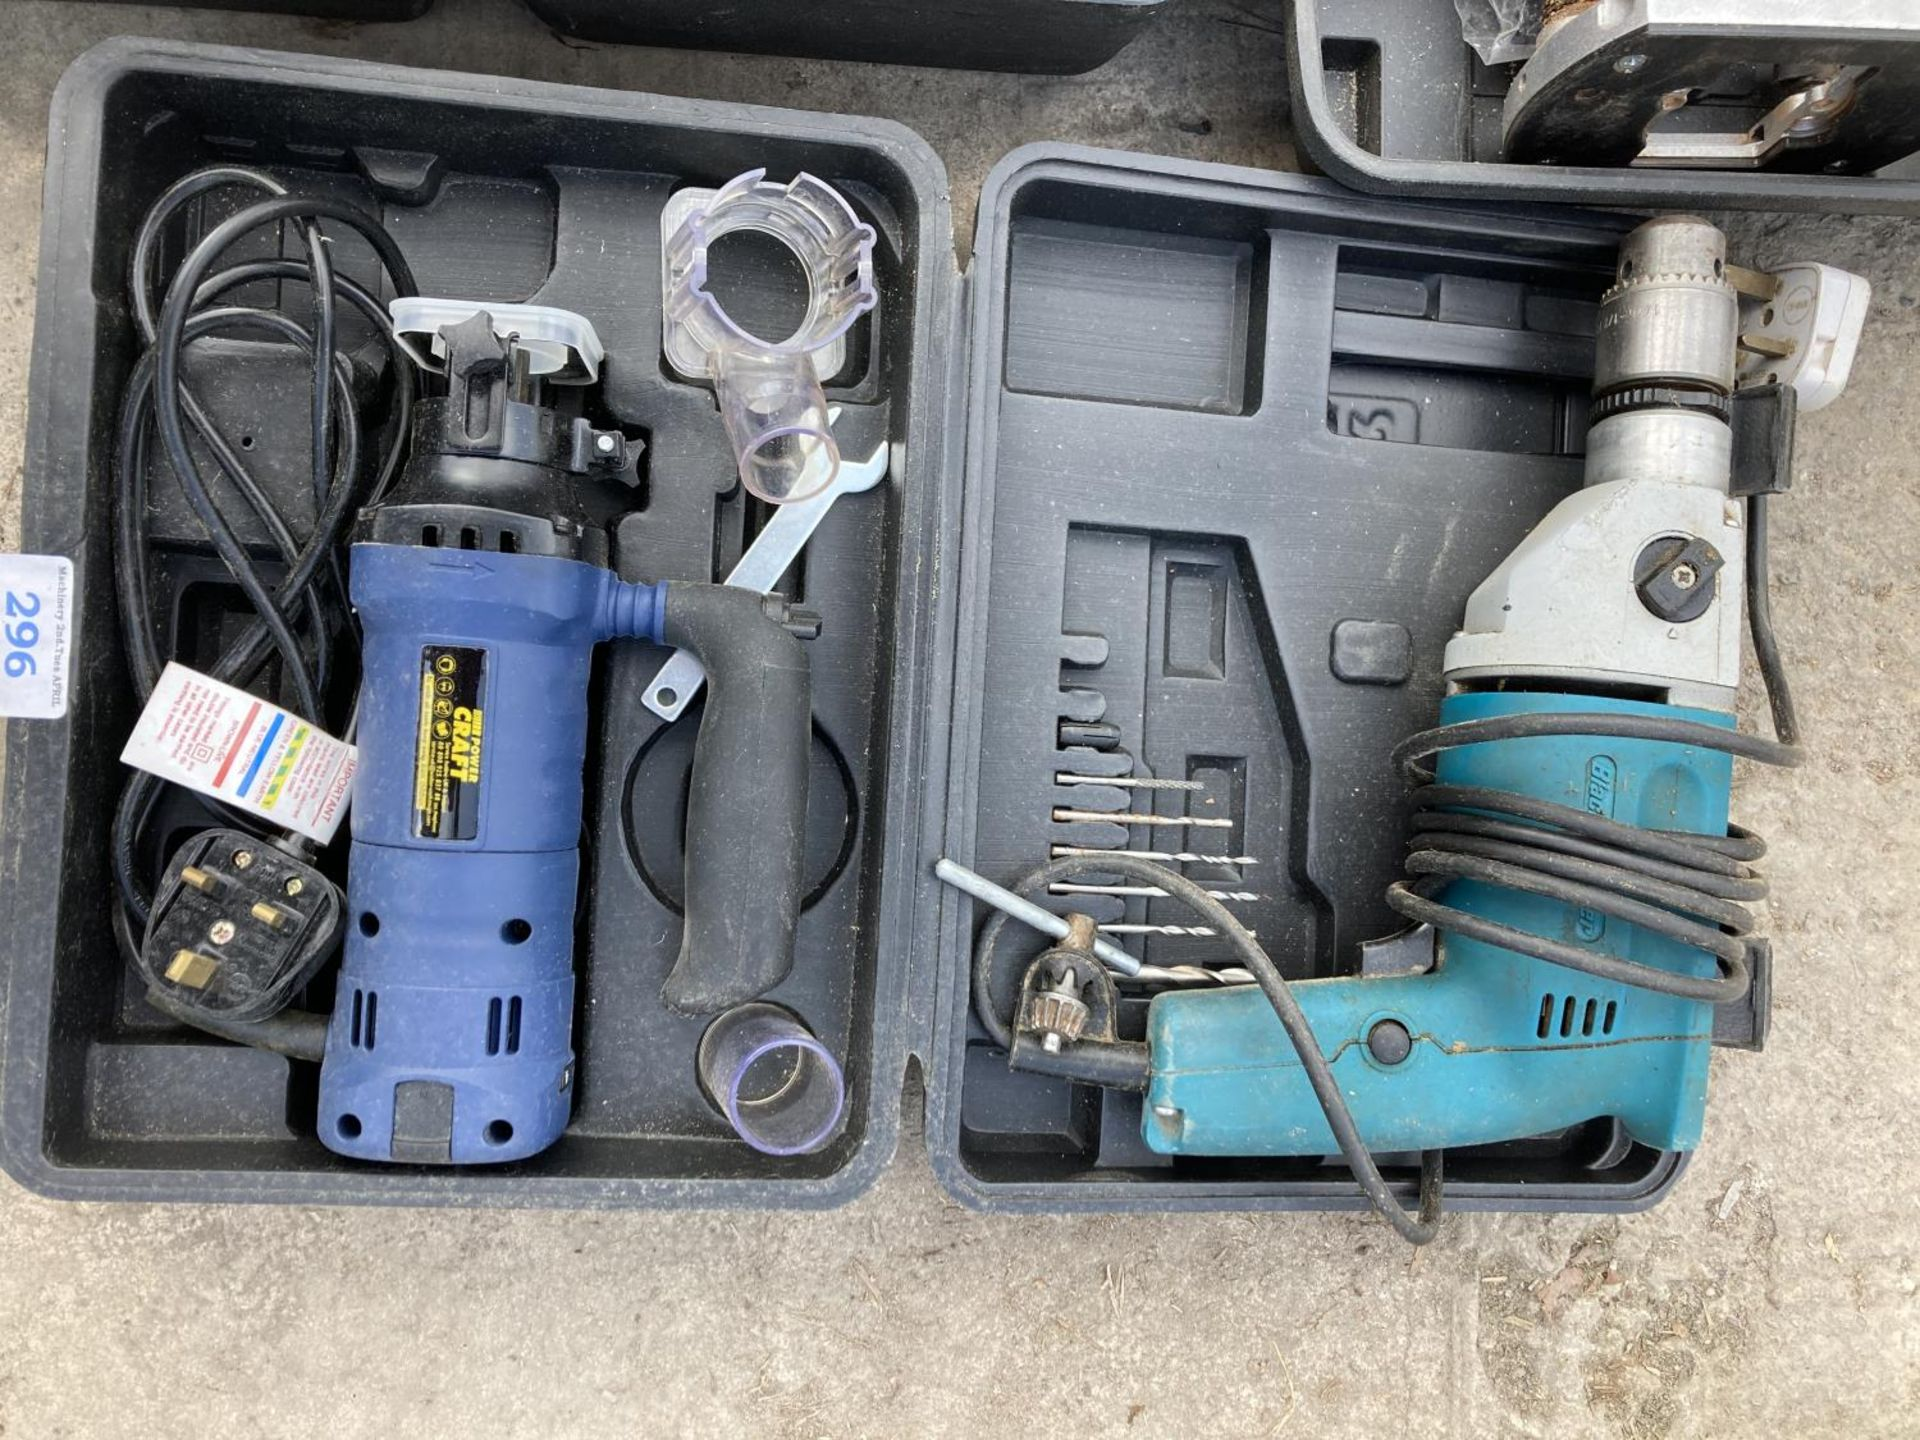 SIX ITEMS OF POWER TOOLS TO INCLUDE THREE BLACK AND DECKER DRILLS, SANDER ETC NO VAT - Image 2 of 4